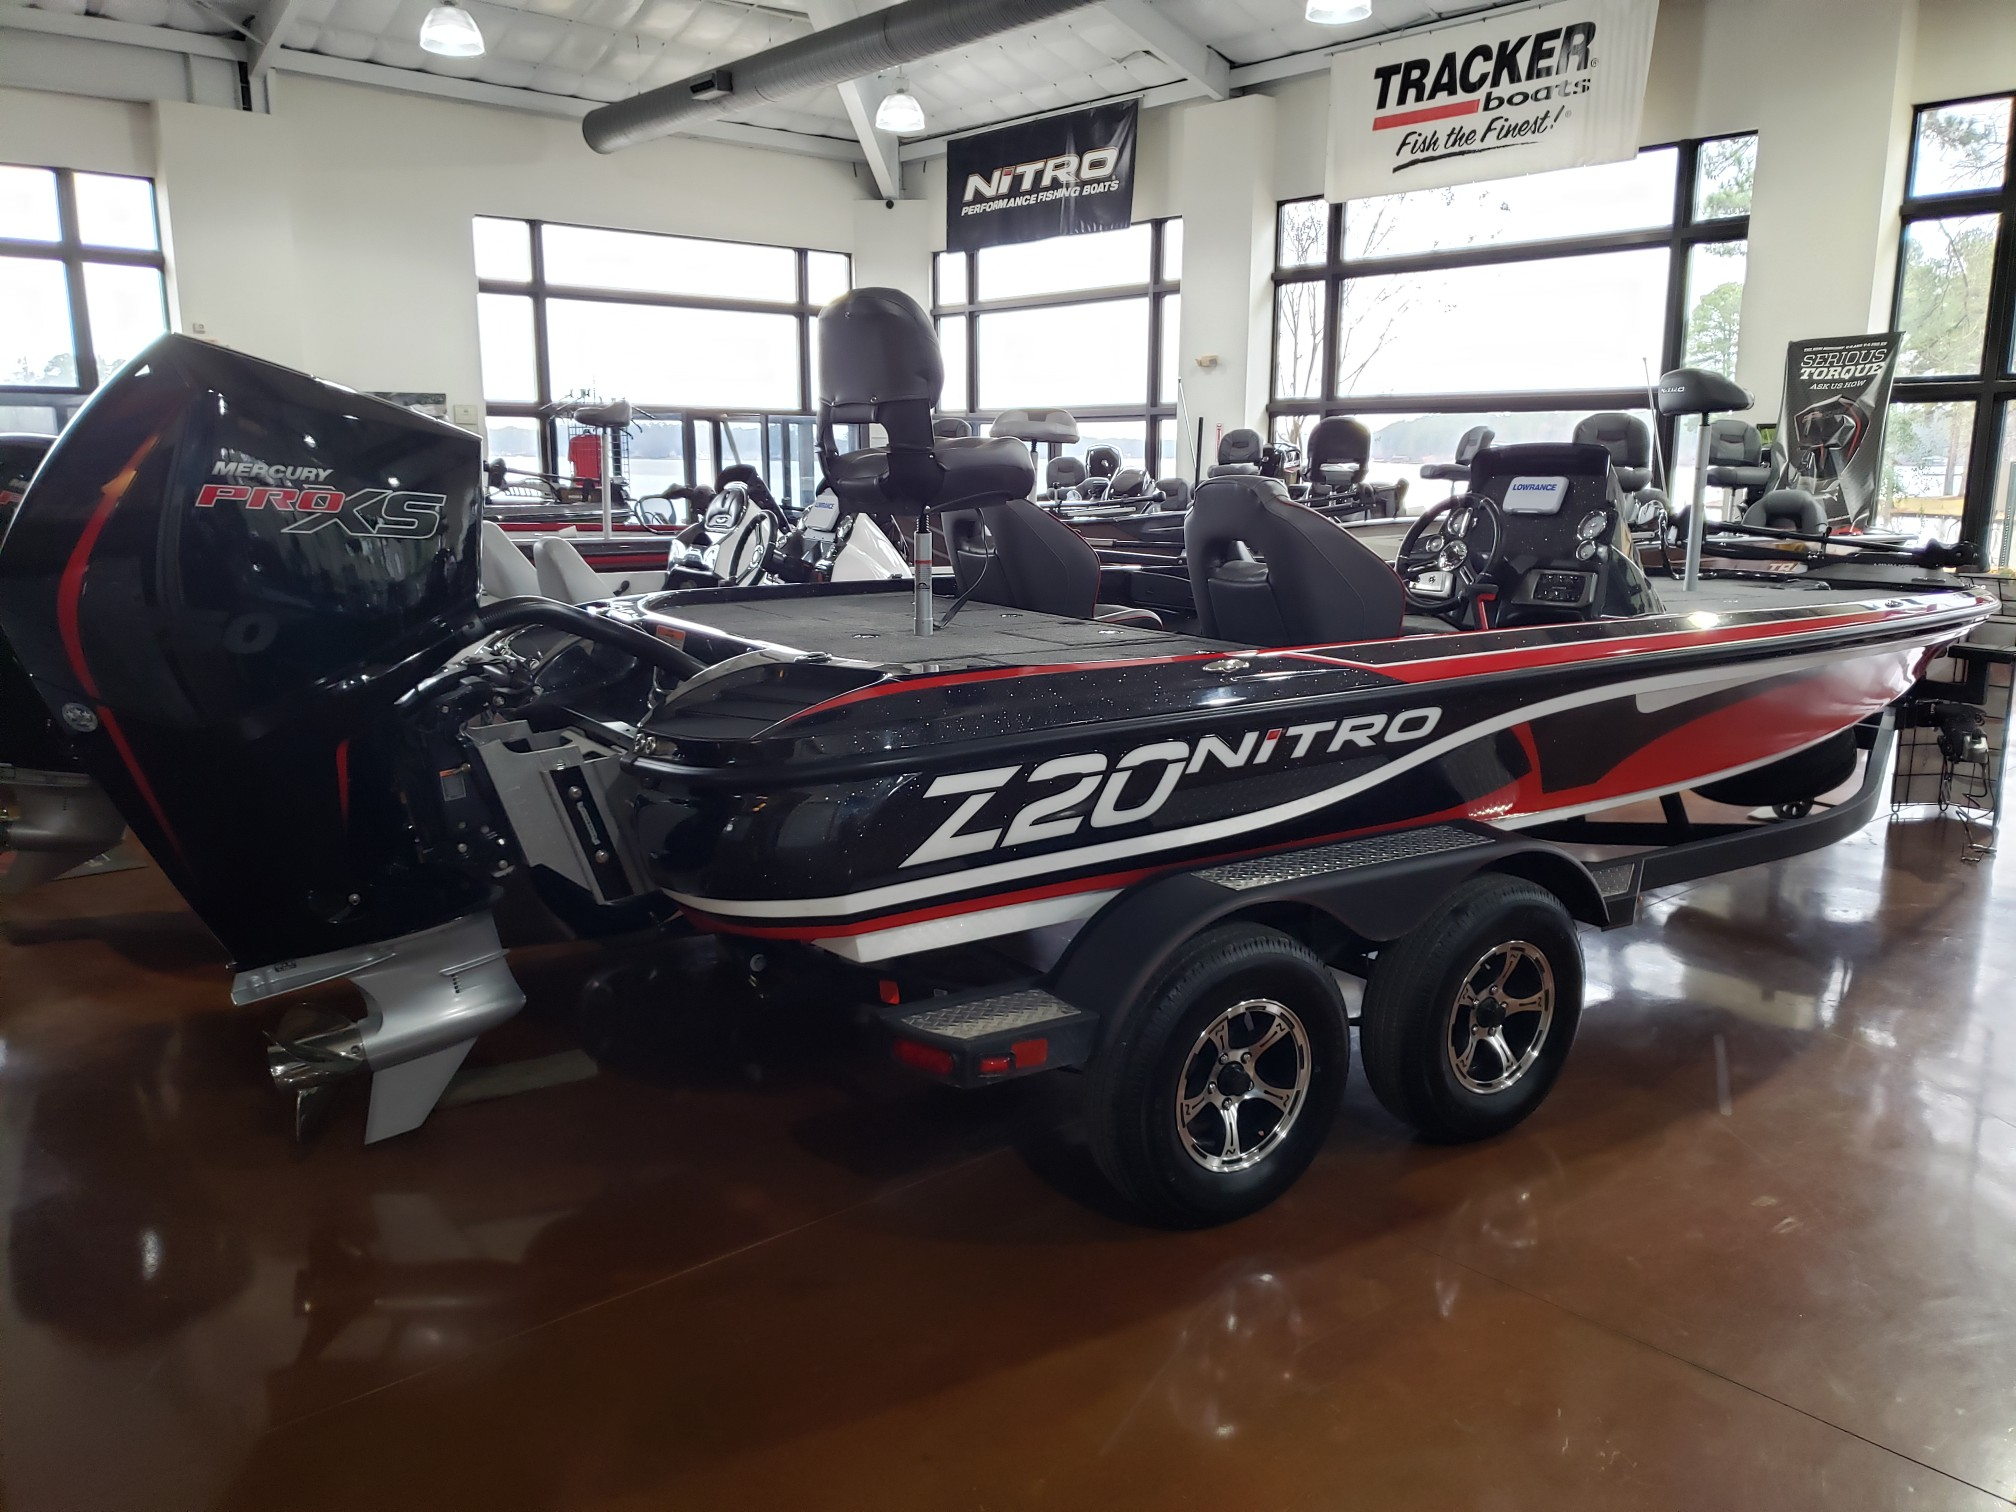 2021 Nitro boat for sale, model of the boat is NZ20 SC21 & Image # 1 of 50